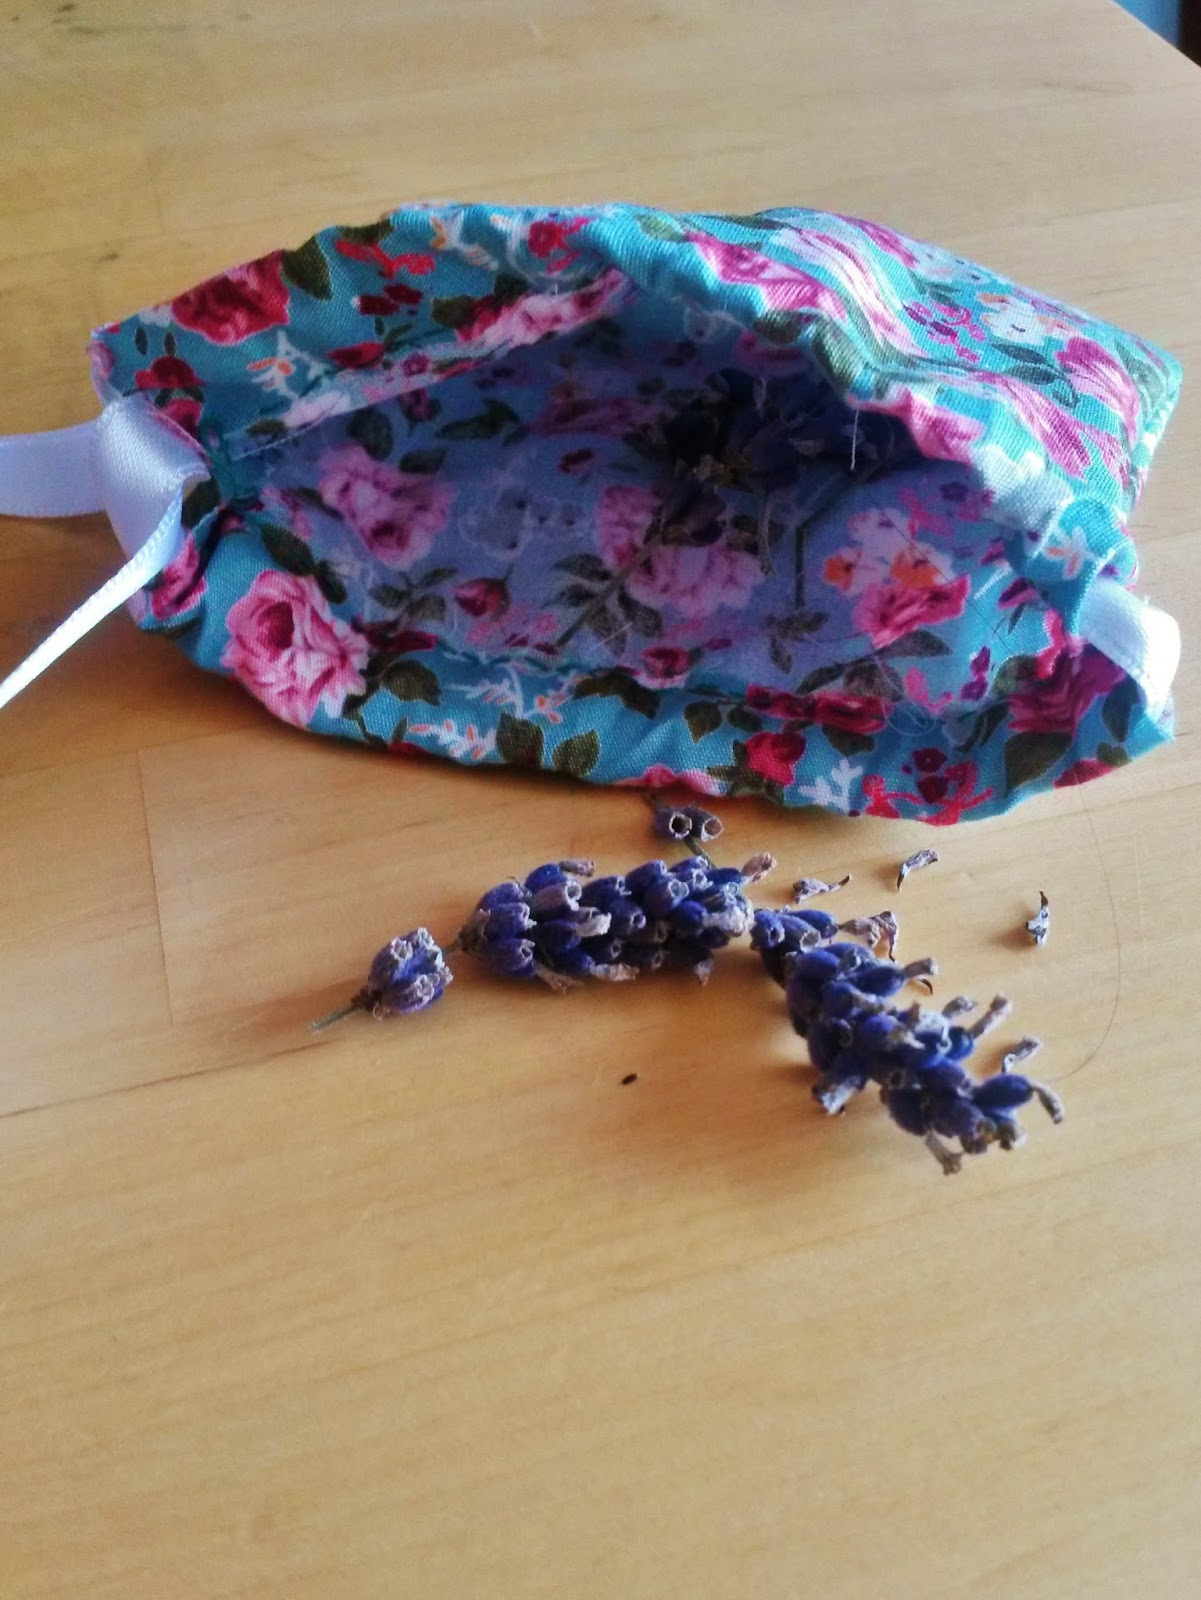 Putting lavender in home made bag